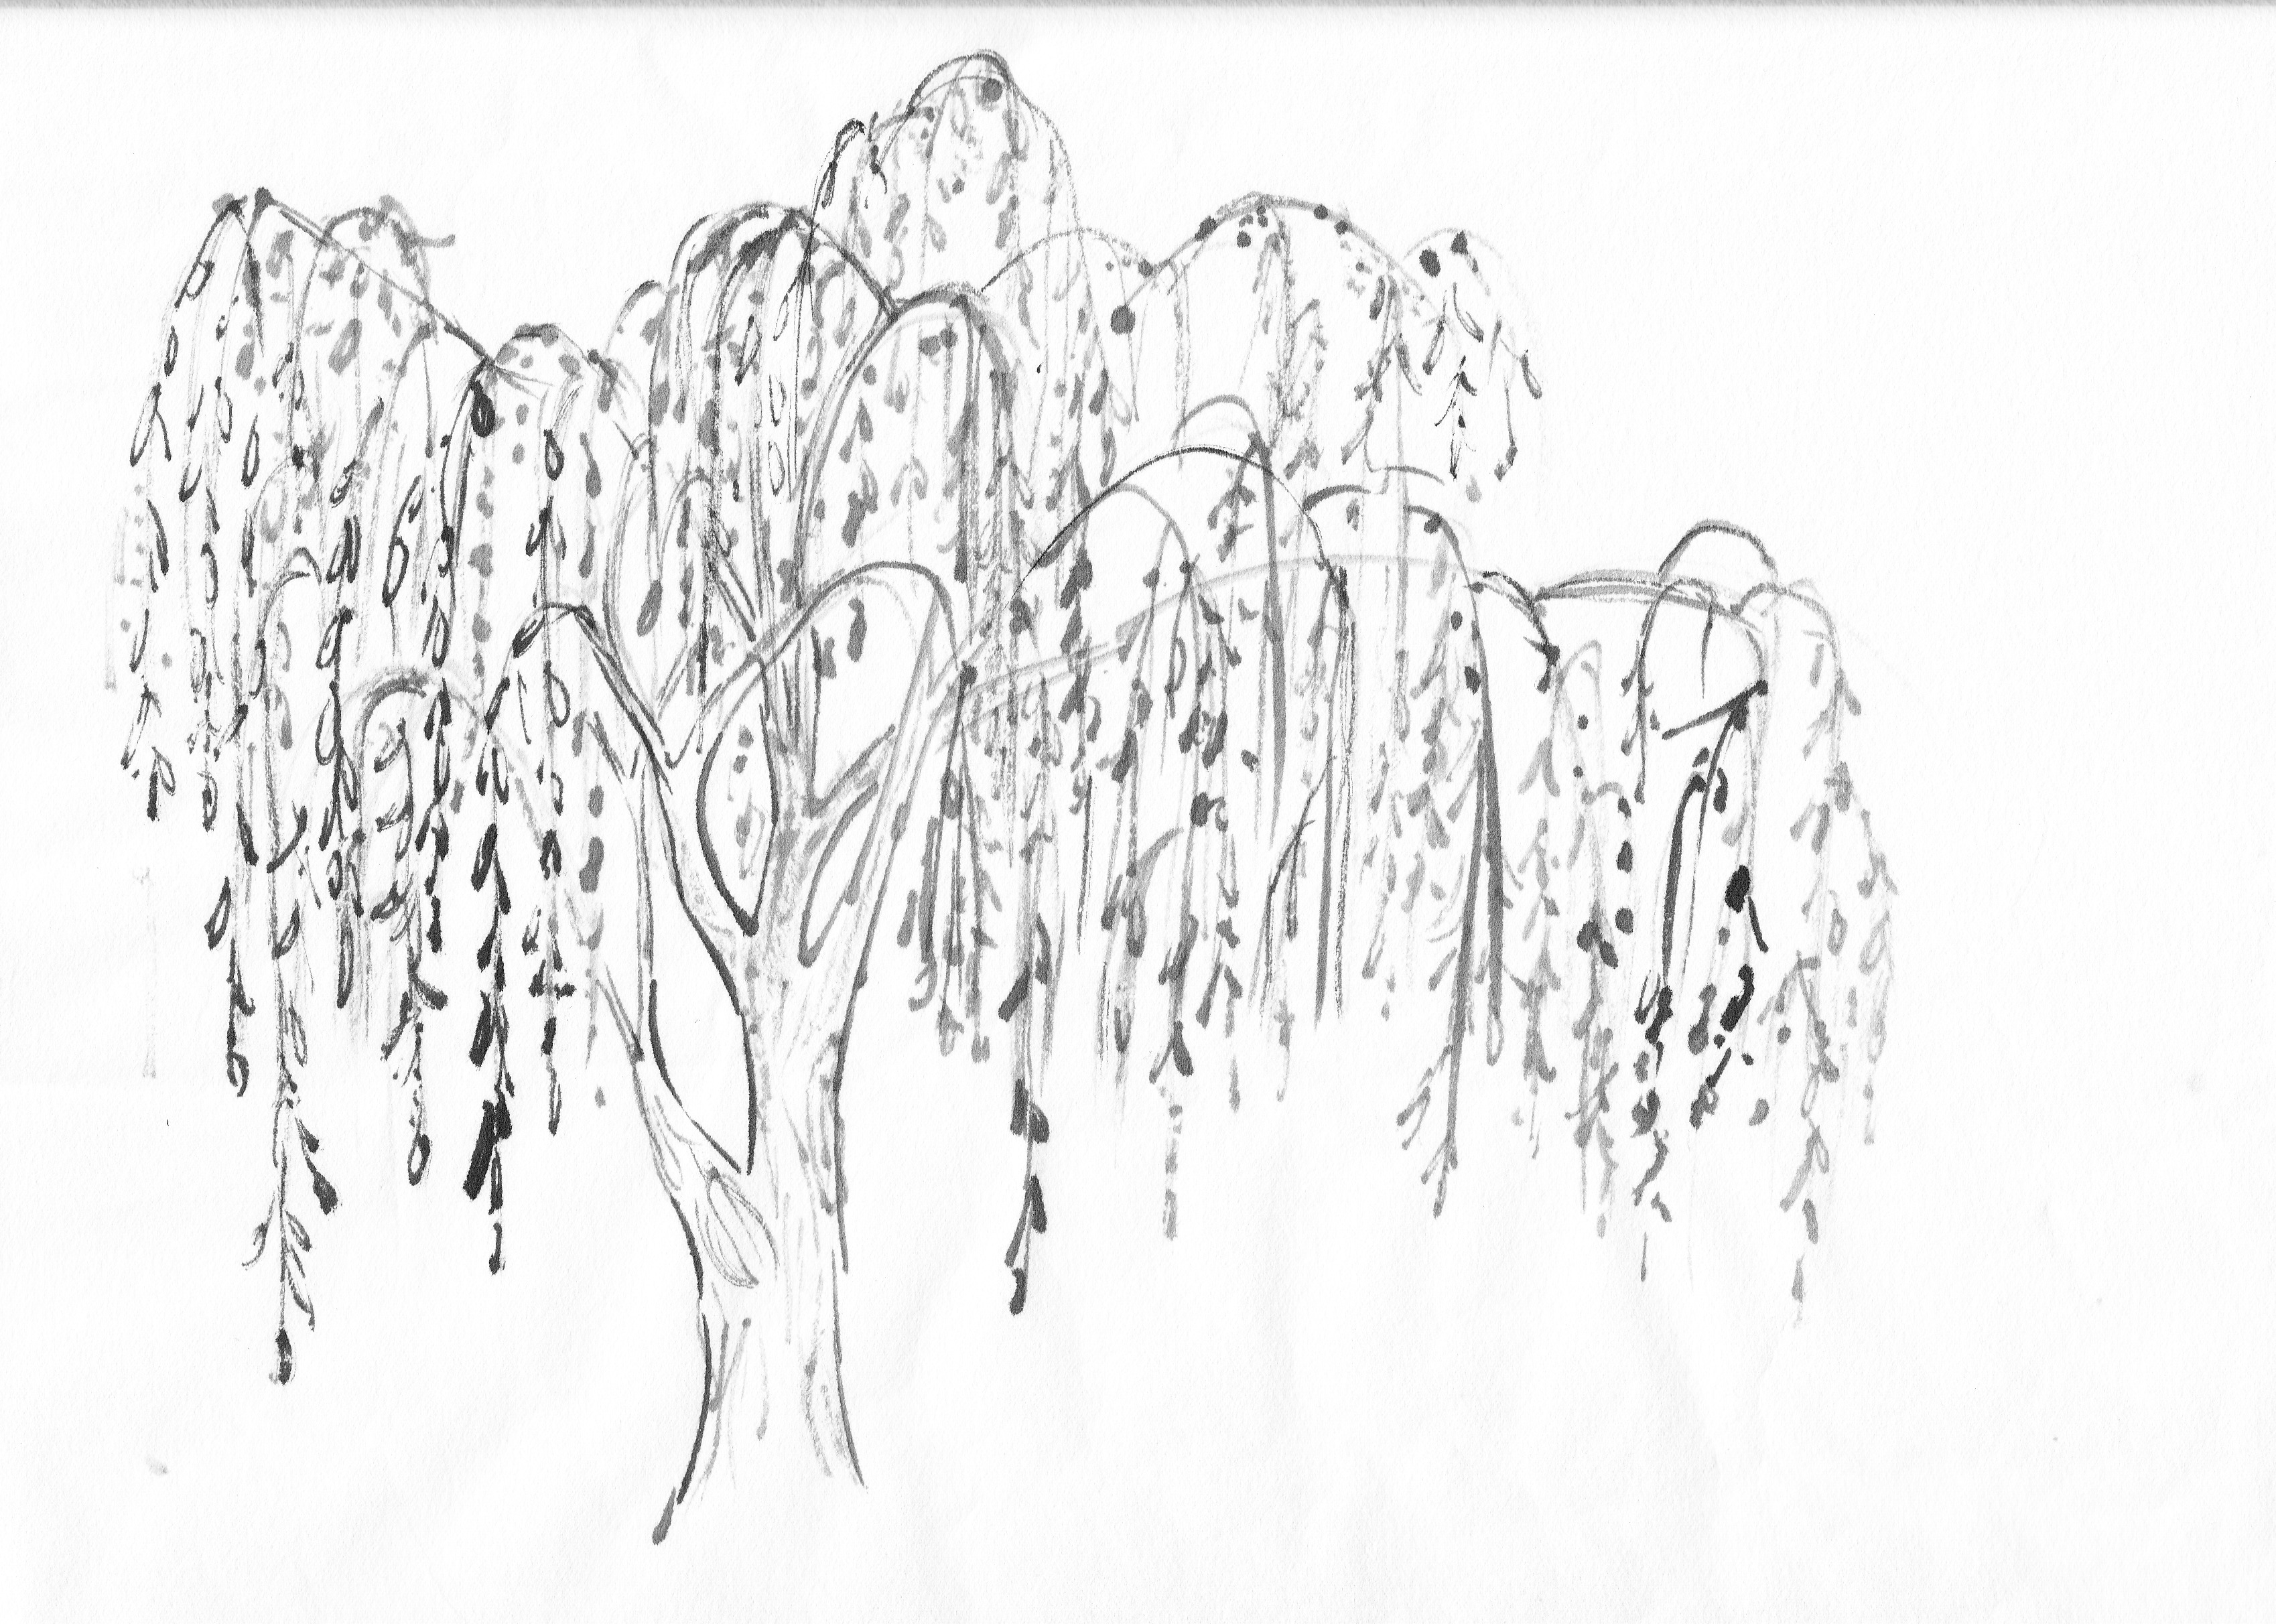 willow tree coloring page download weeping willow coloring for free designlooter coloring willow tree page 1 1